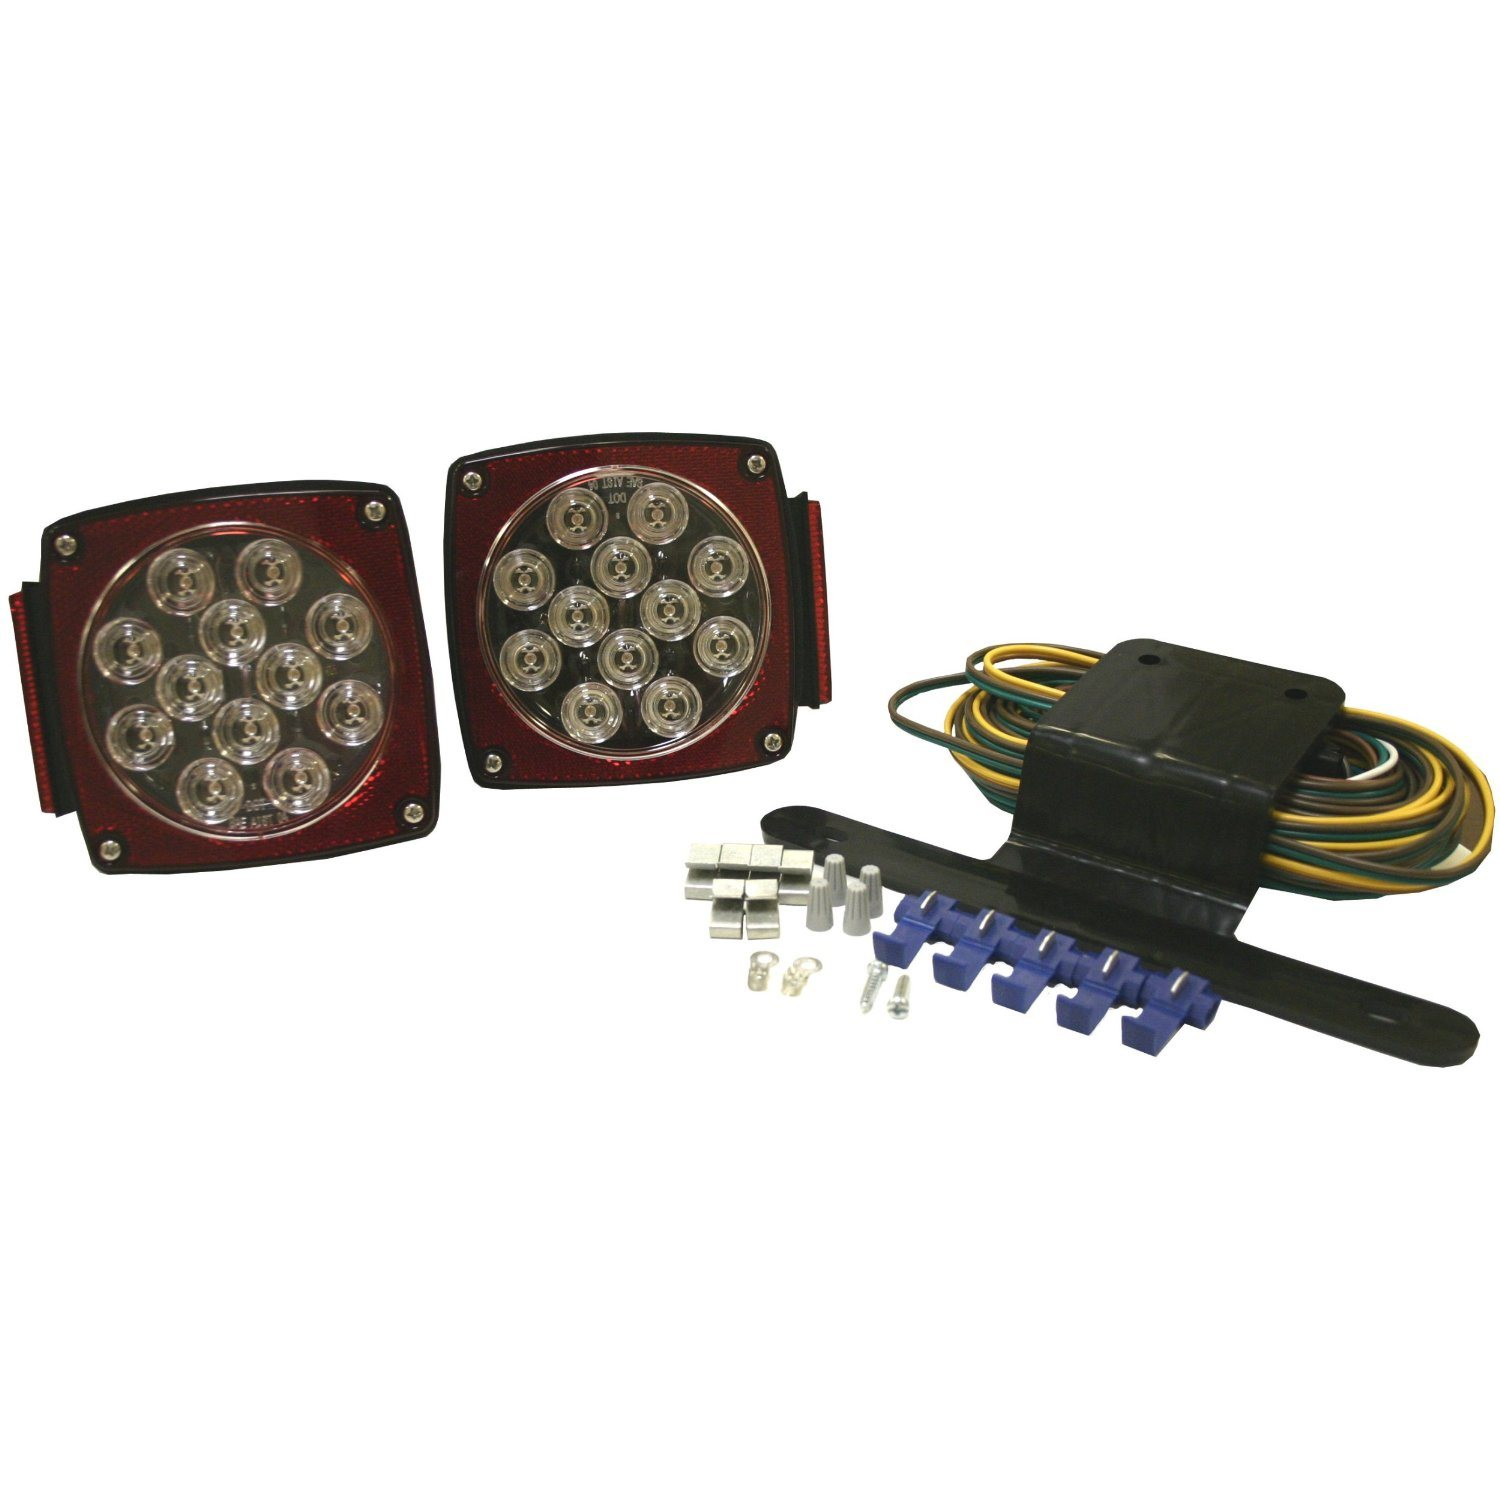 Lightup.com - LED lighting for homes, offices, and warehouses.